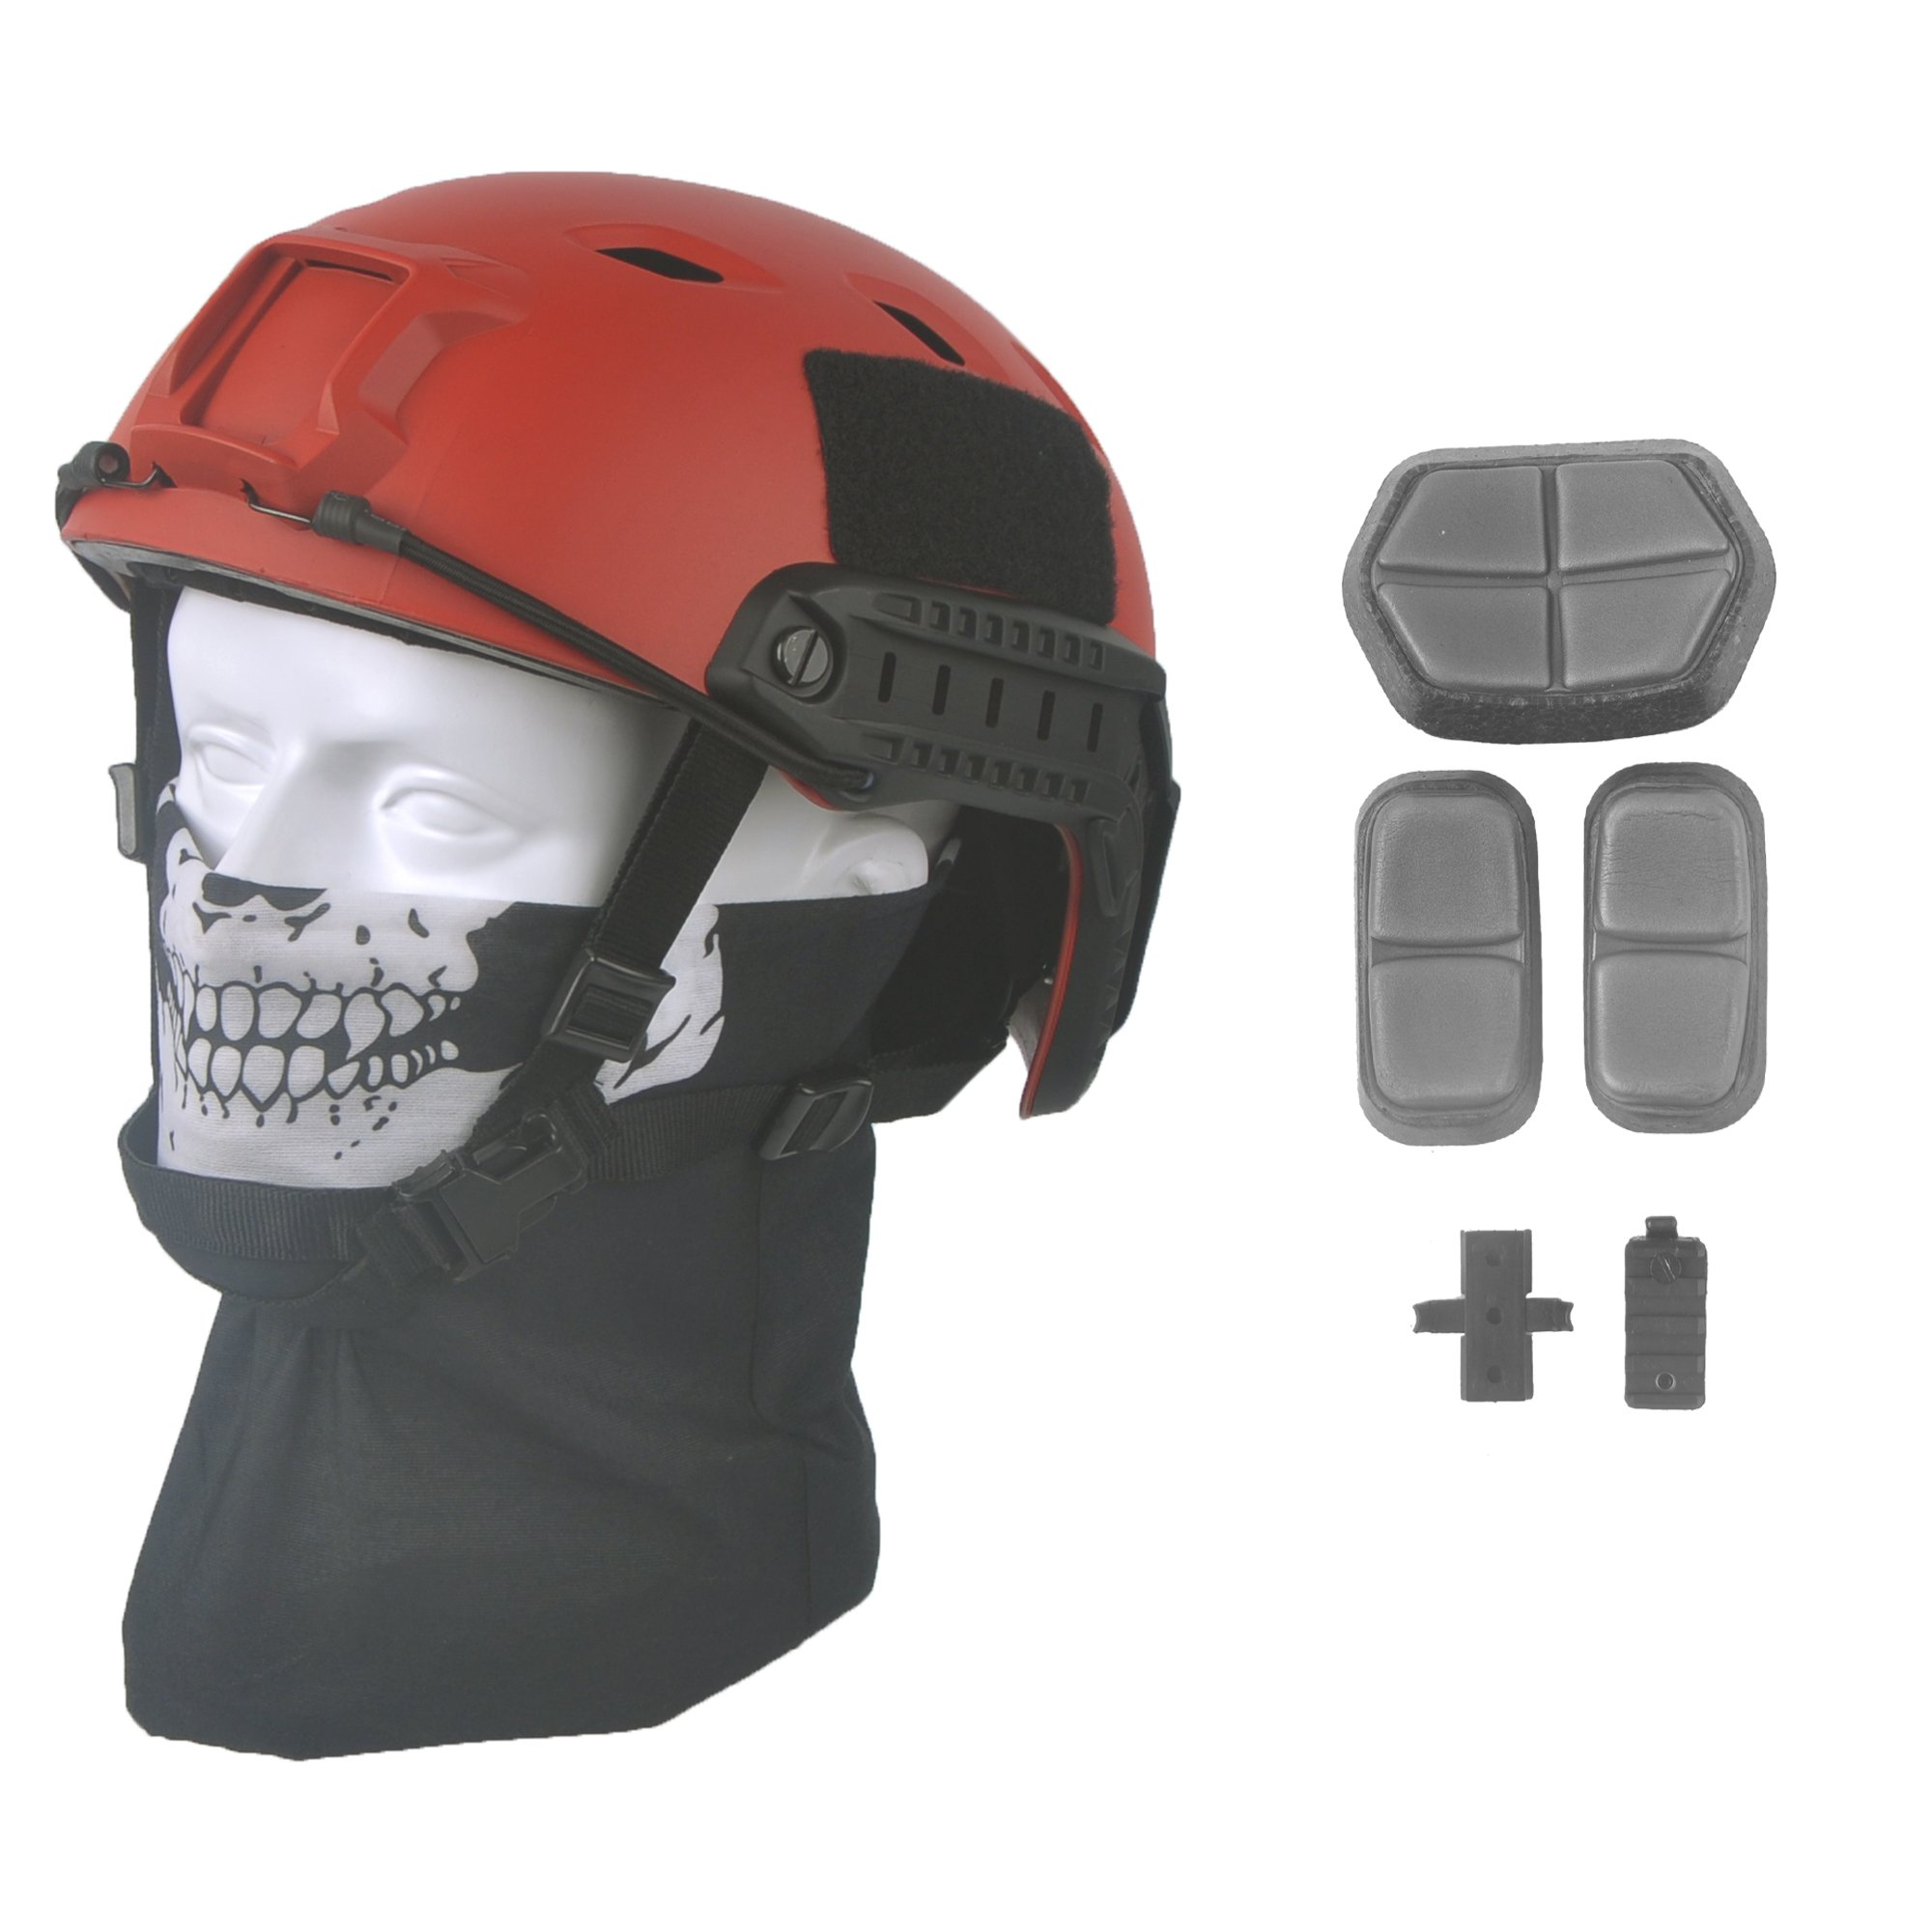 LOOGU Fast BJ Base Jump Military Helmet with 12-in-1 Headwear (RD) by LOOGU